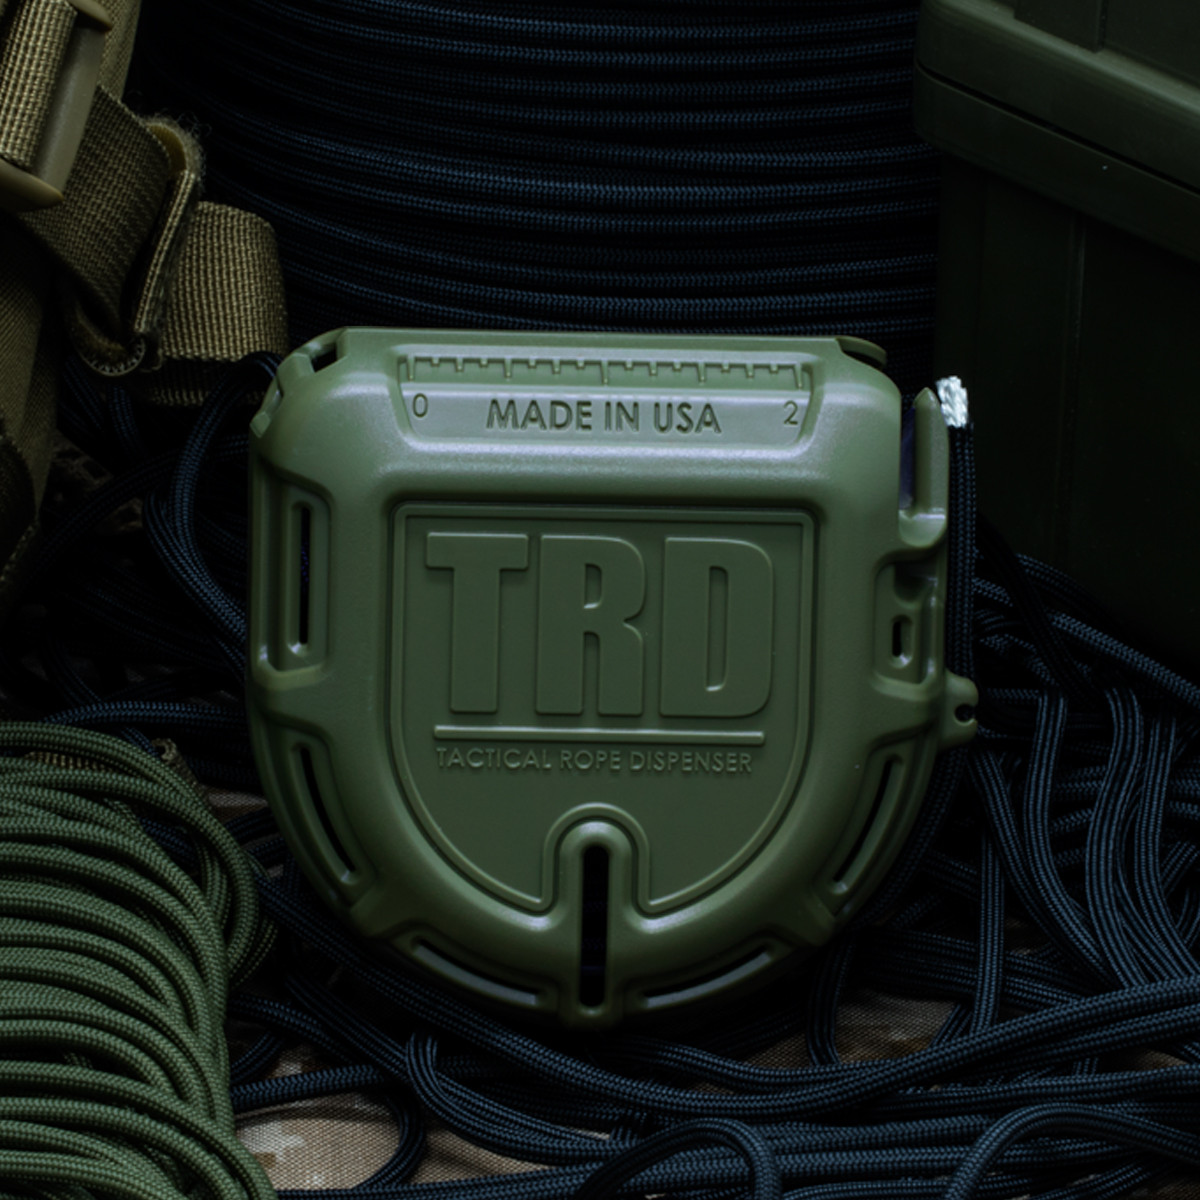 Atood Rope TRD Tactical Rope Dispenser - OD Green